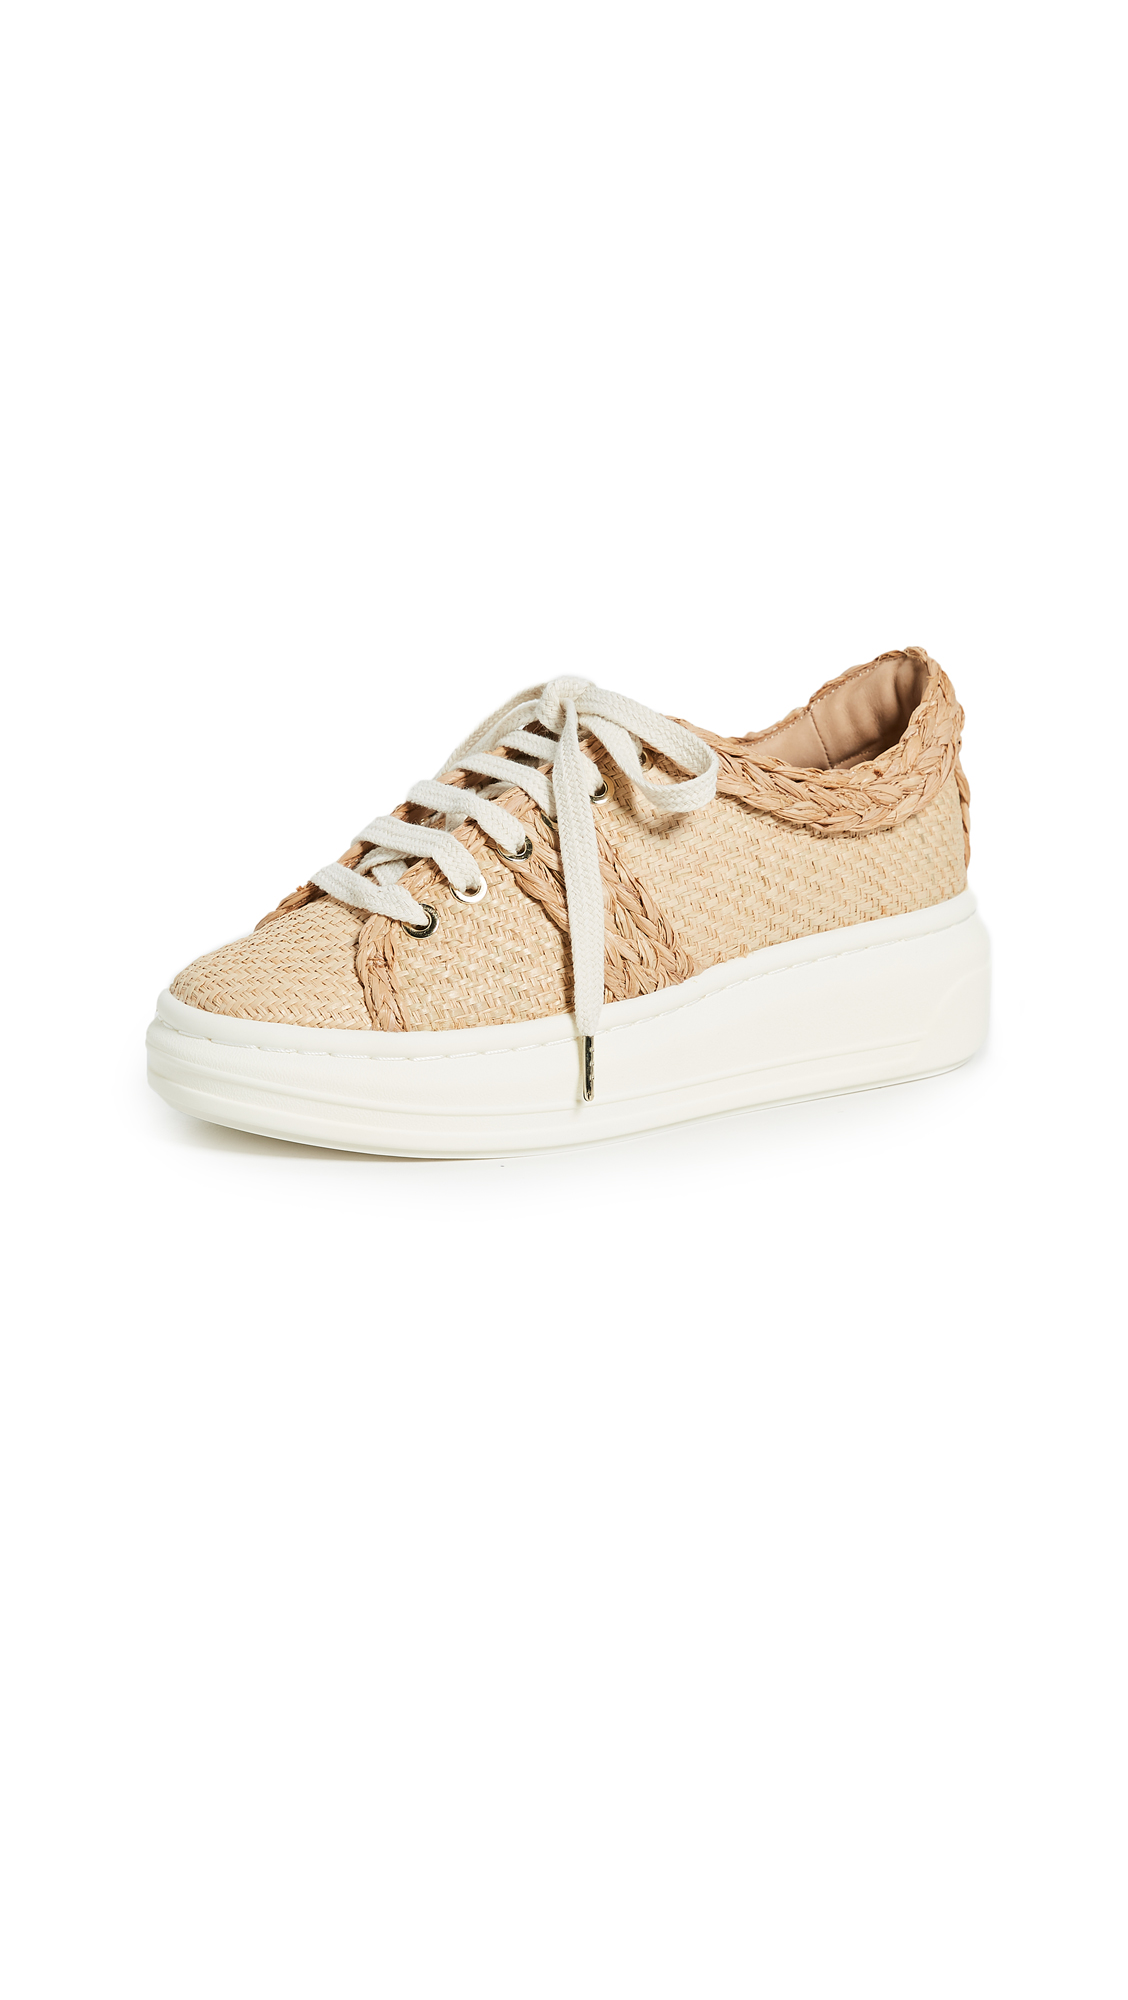 Photo of Joie Maddysun Sneakers online shoes sales